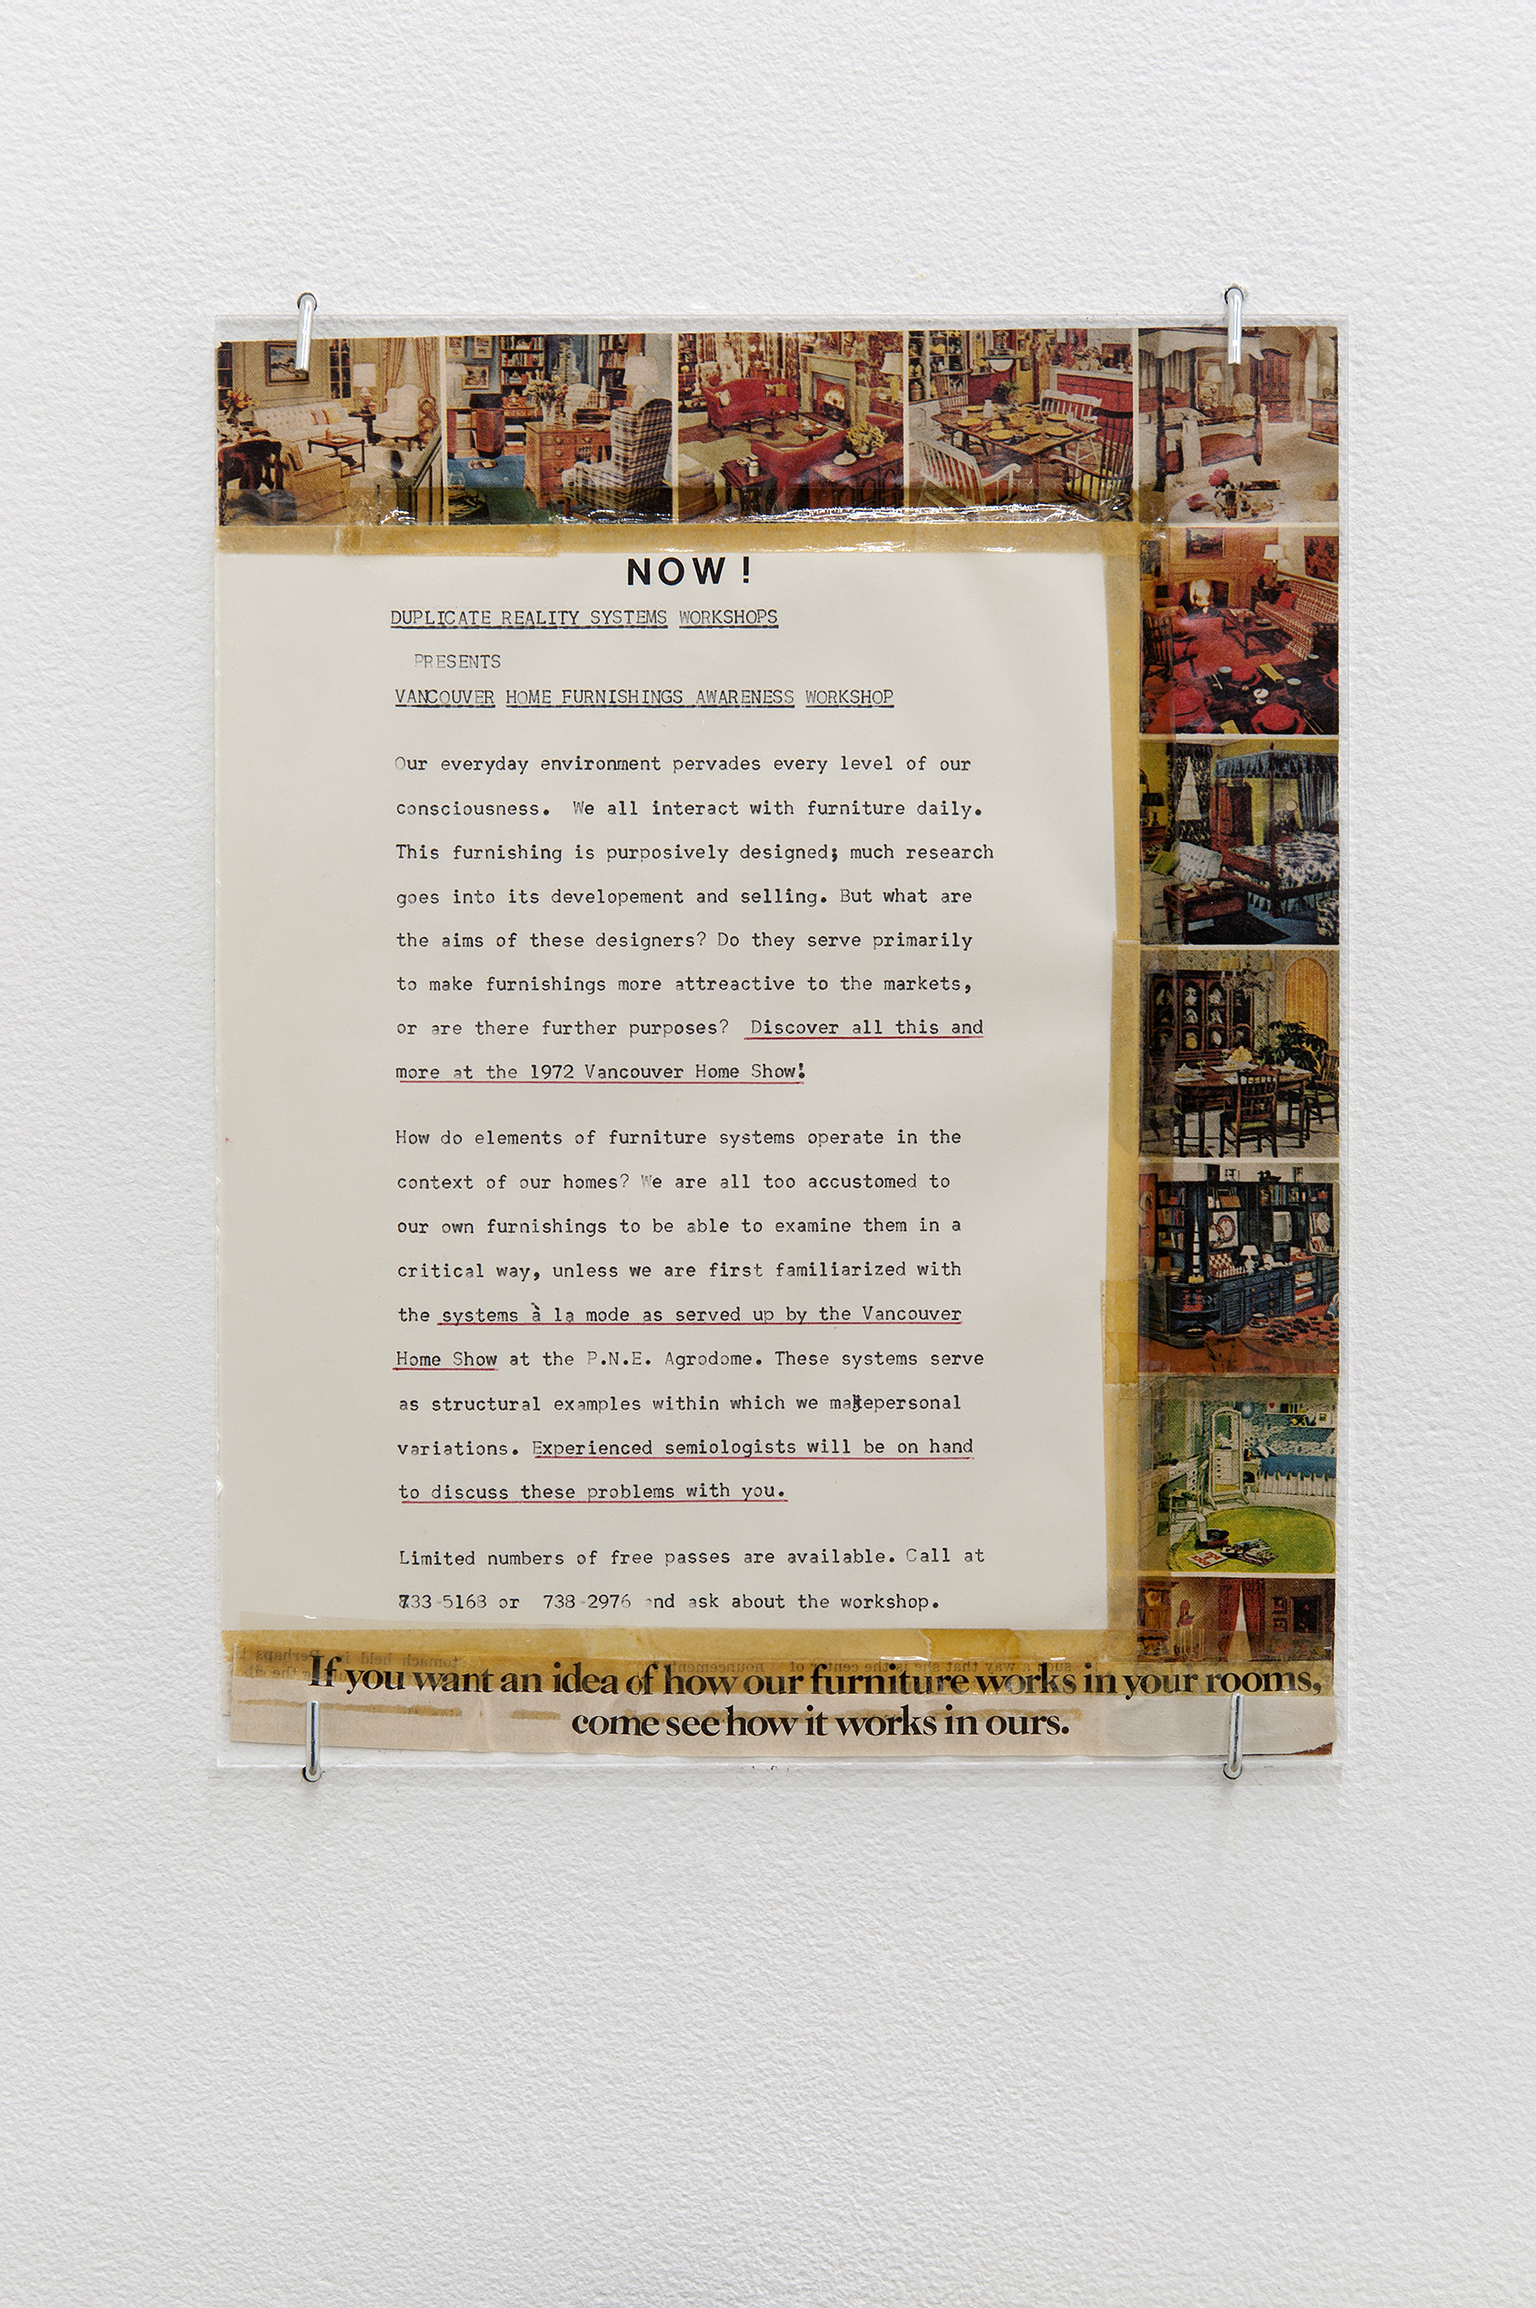 Robert Kleyn, Now! Duplicate Reality Systems Work Shops Presents Vancouver Home Furnishings, 1972, typescript, taped magazine cut-outs, 11 x 9 in. (27 x 22 cm) by